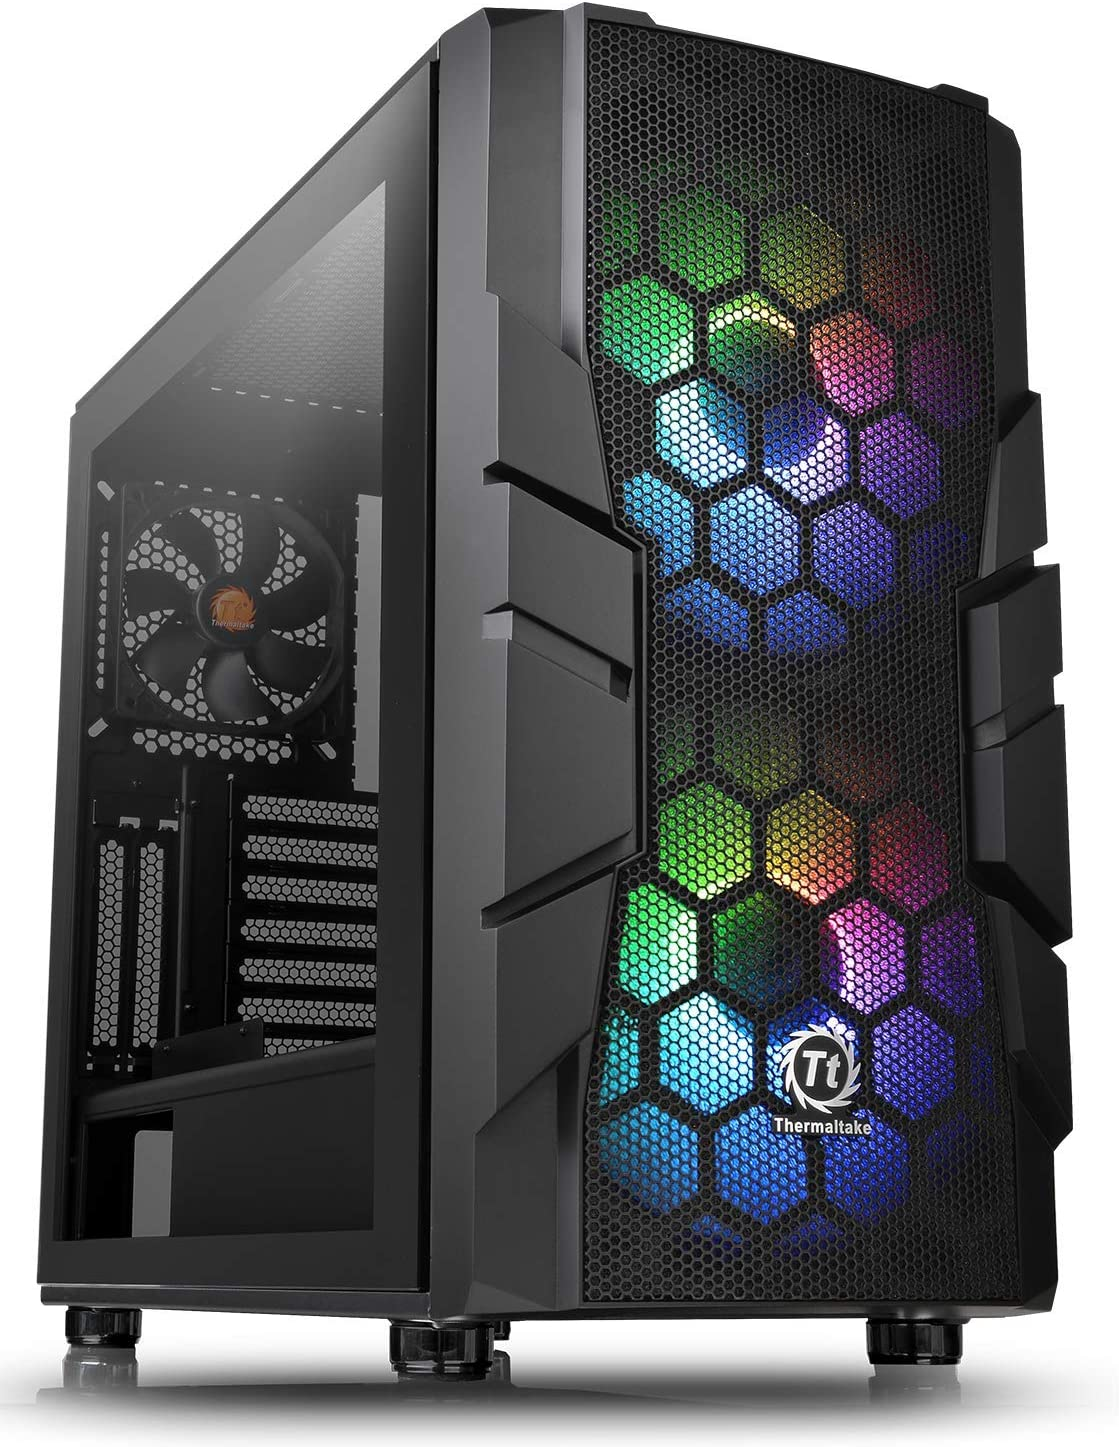 Thermaltake Commander C33 Motherboard Sync ARGB ATX Mid Tower Computer Chassis with 2 200mm ARGB 5V Motherboard Sync RGB Front Fans + 1 120mm Rear Black Fan Pre-Installed CA-1N4-00M1WN-00